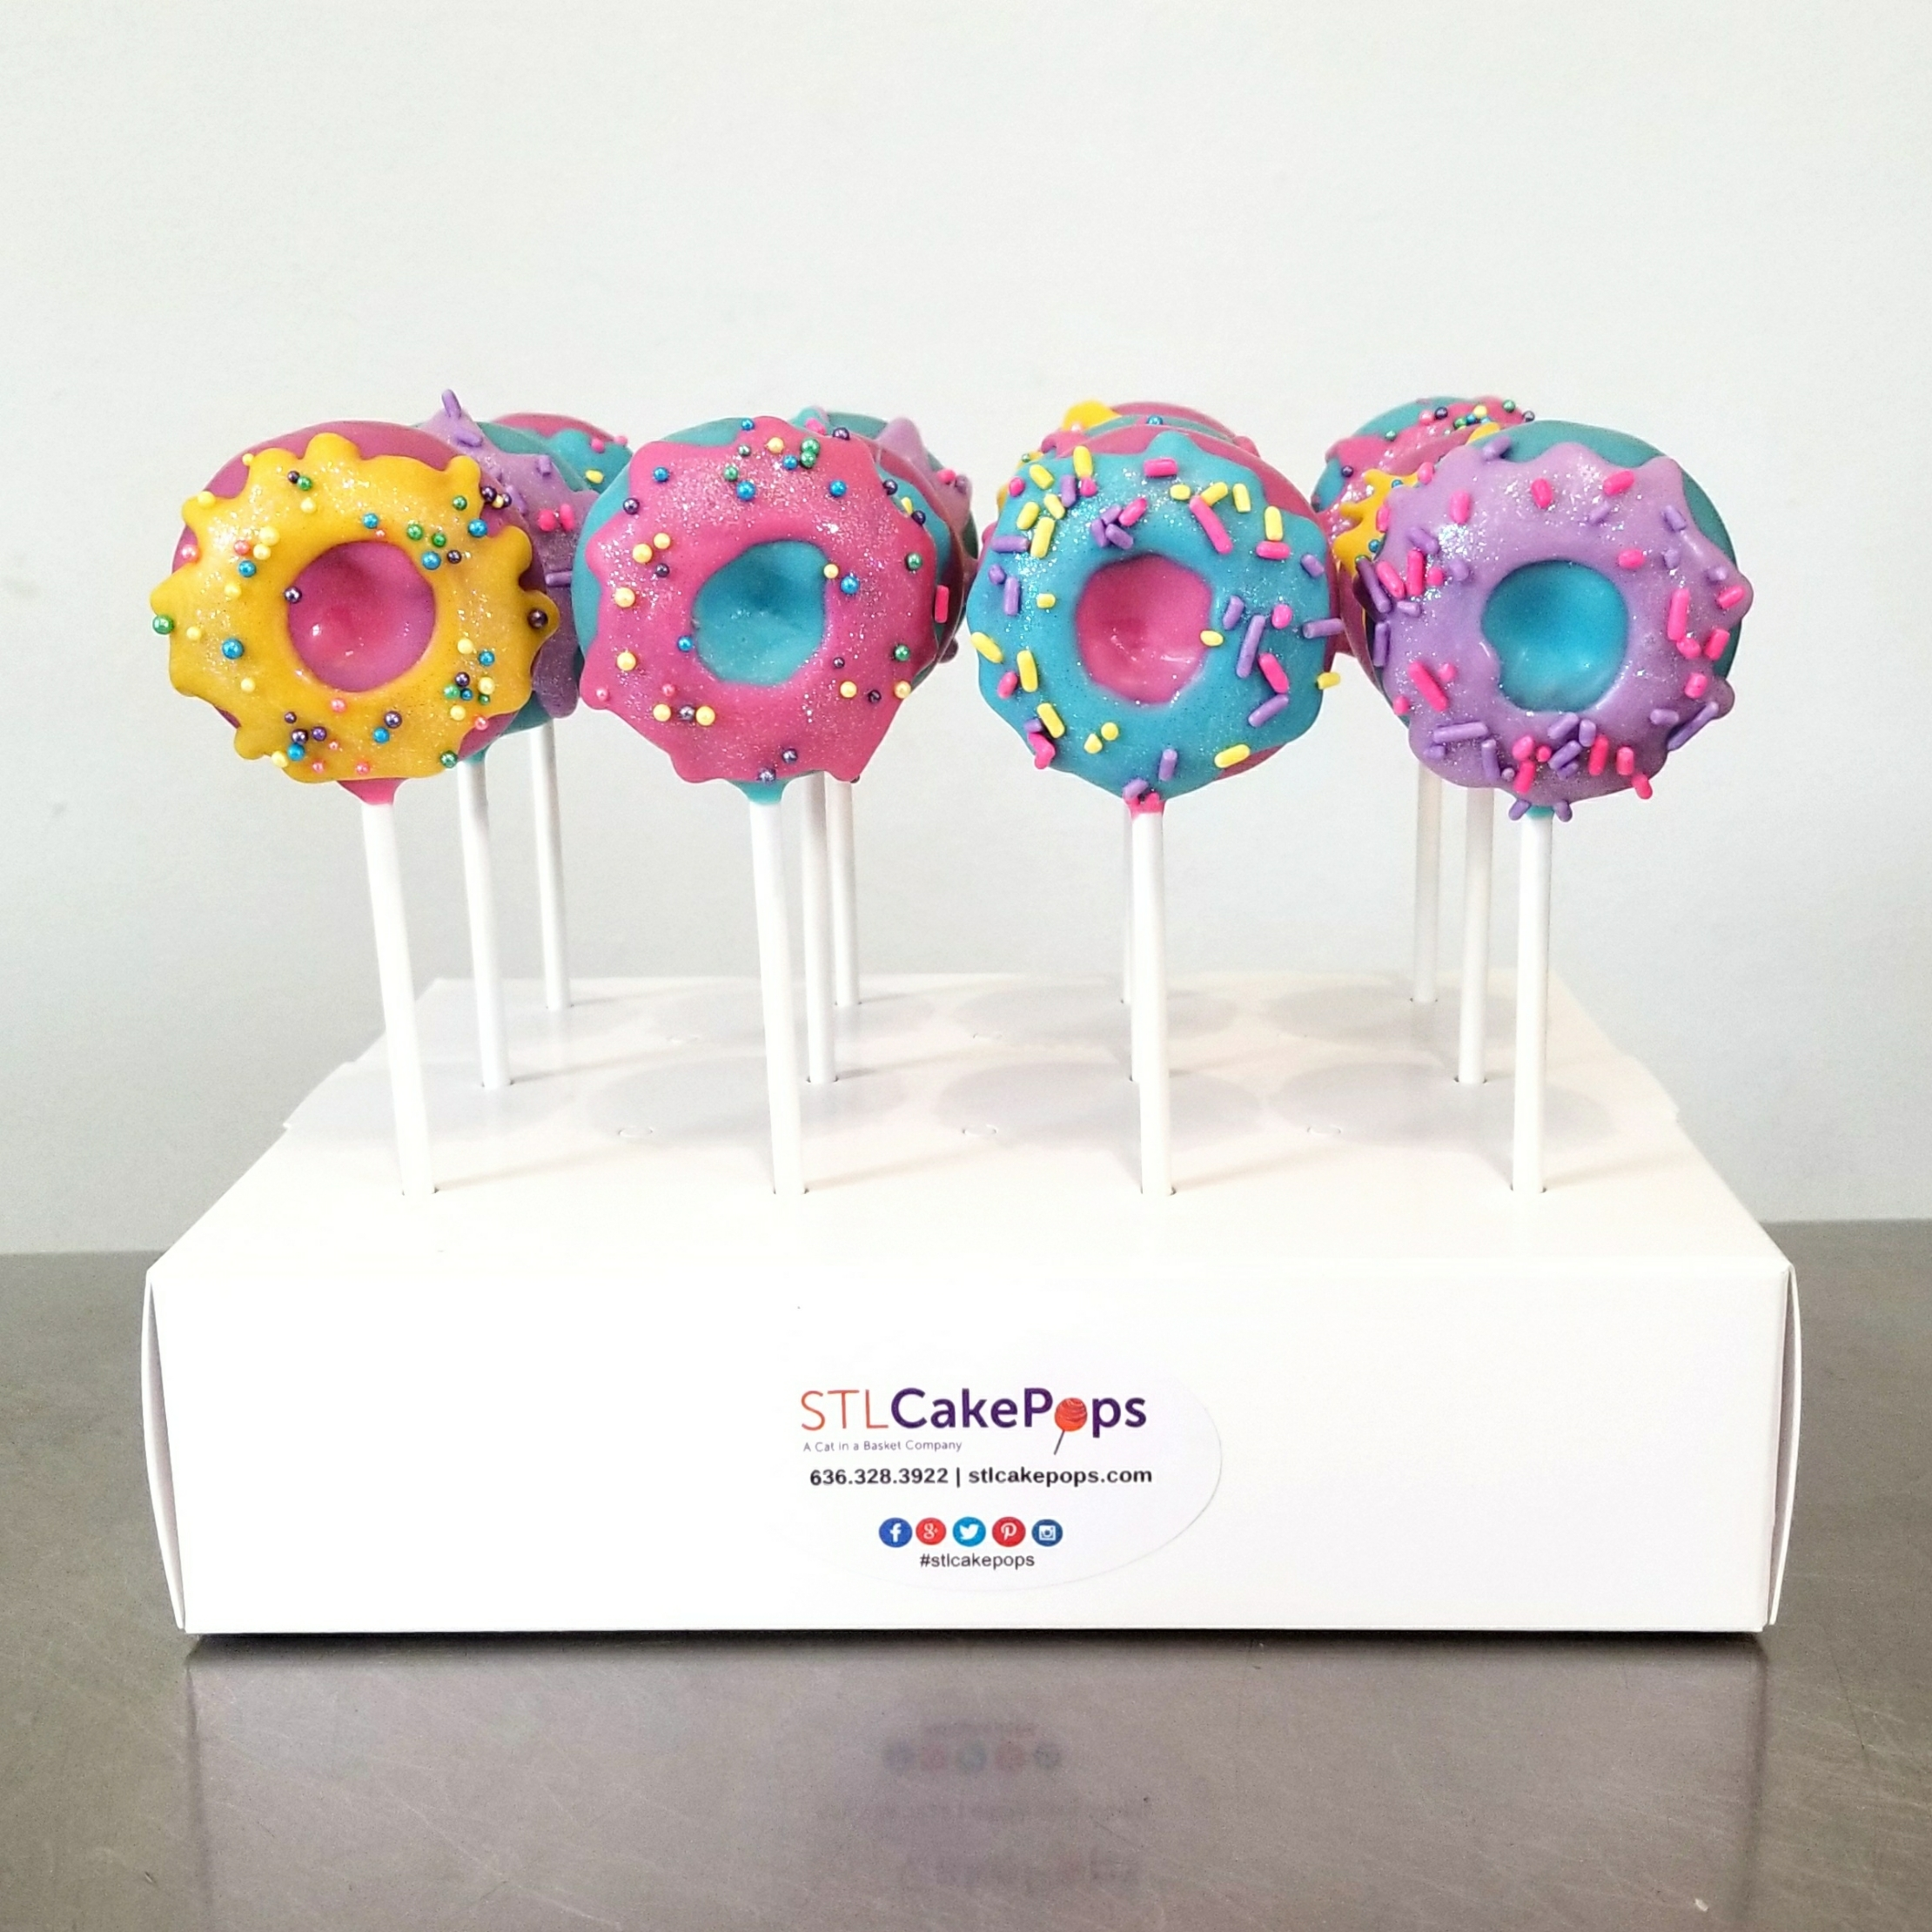 donut cake pops stl cake pops st louis mo. Black Bedroom Furniture Sets. Home Design Ideas